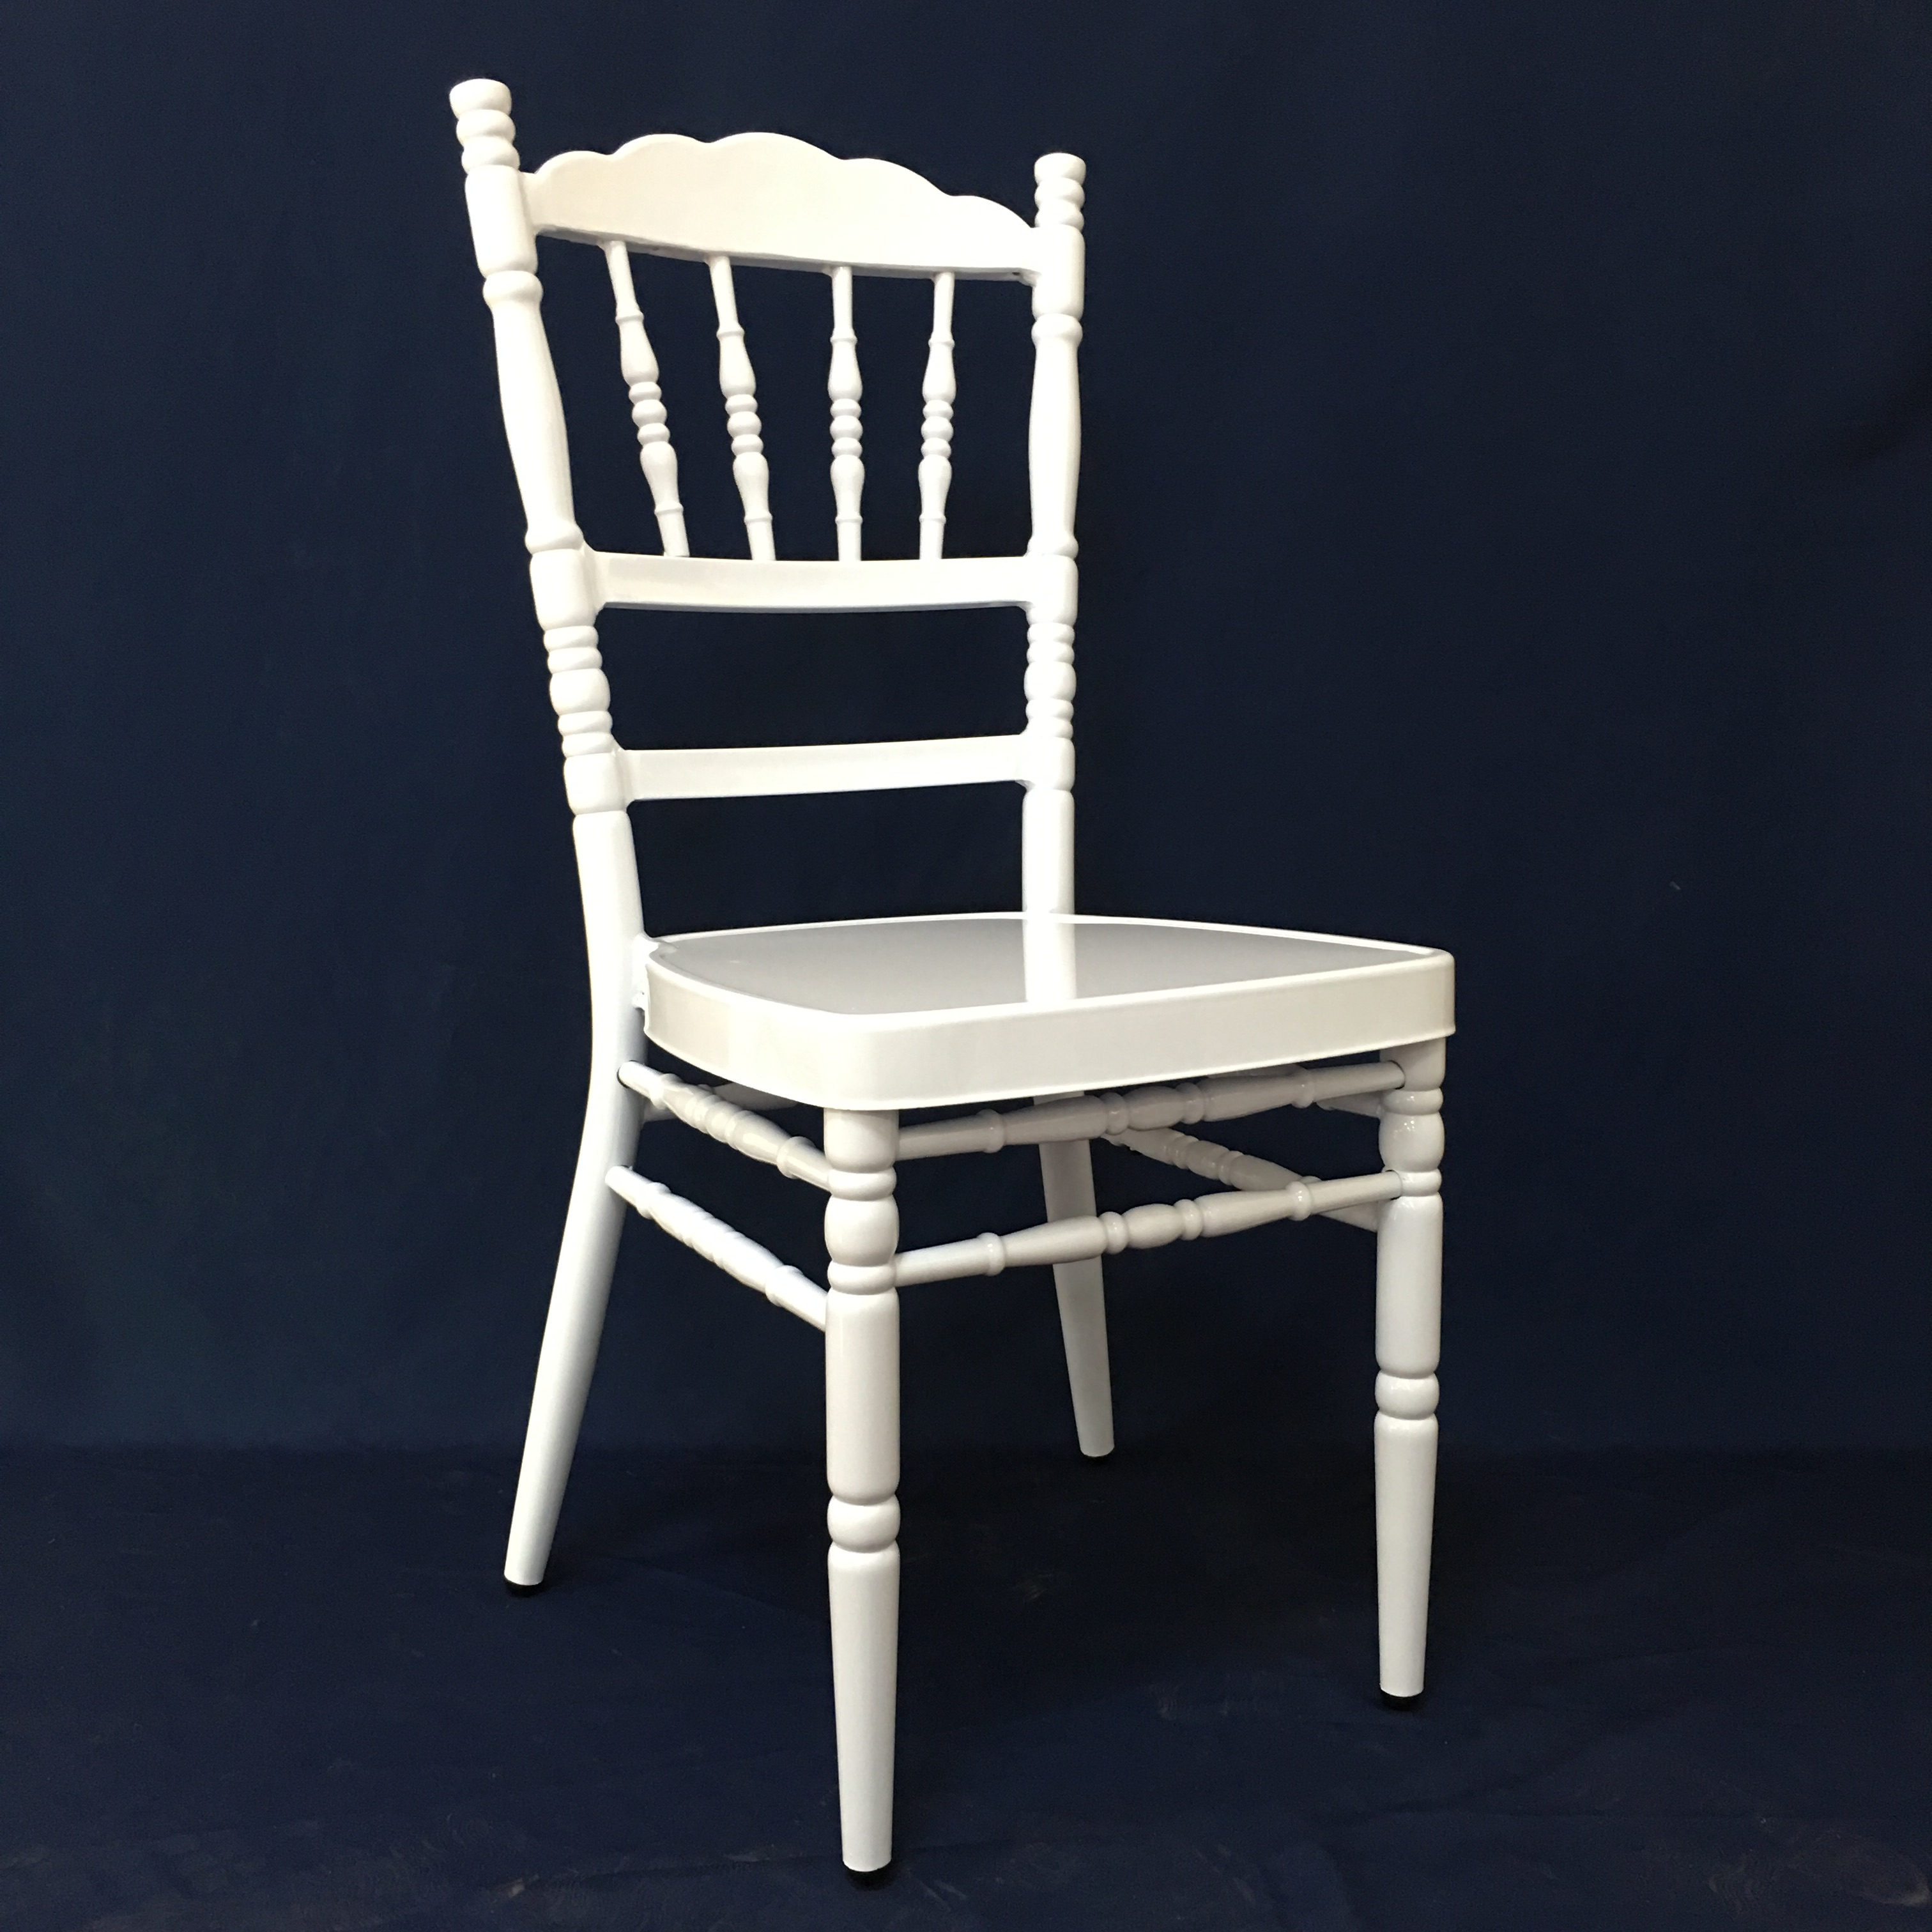 OEM Customized Church Chair Dimensions -